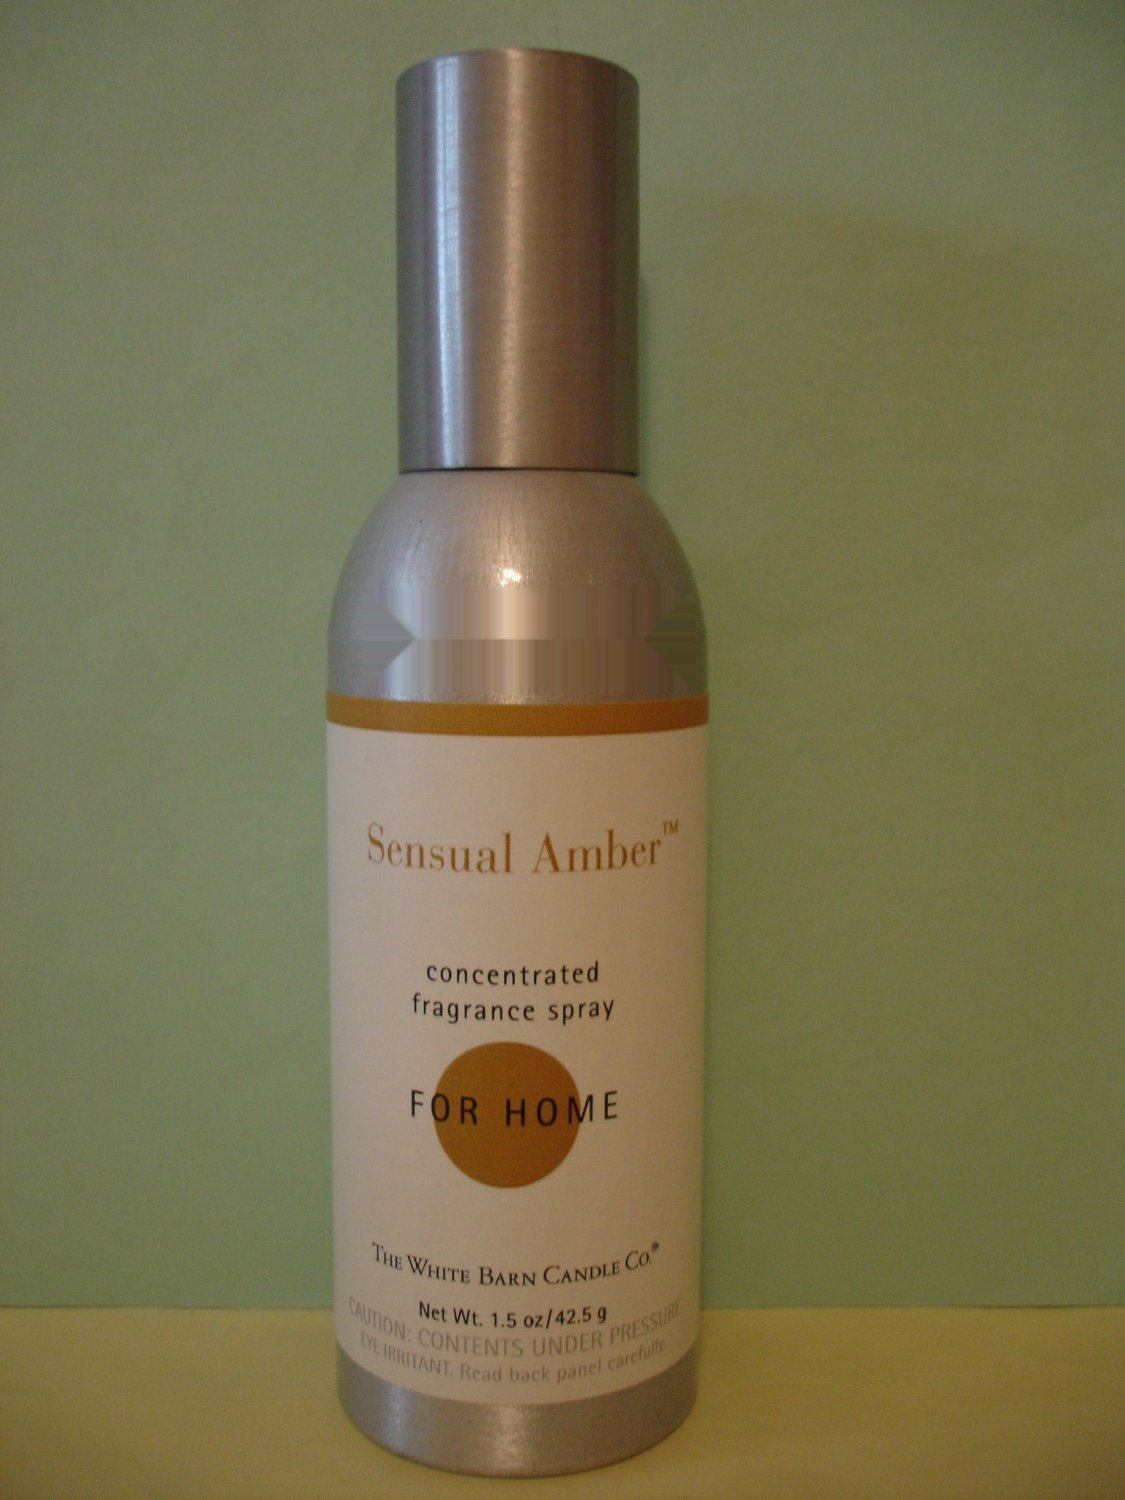 Bath Amp Body Works Sensual Amber Home Fragrance Spray